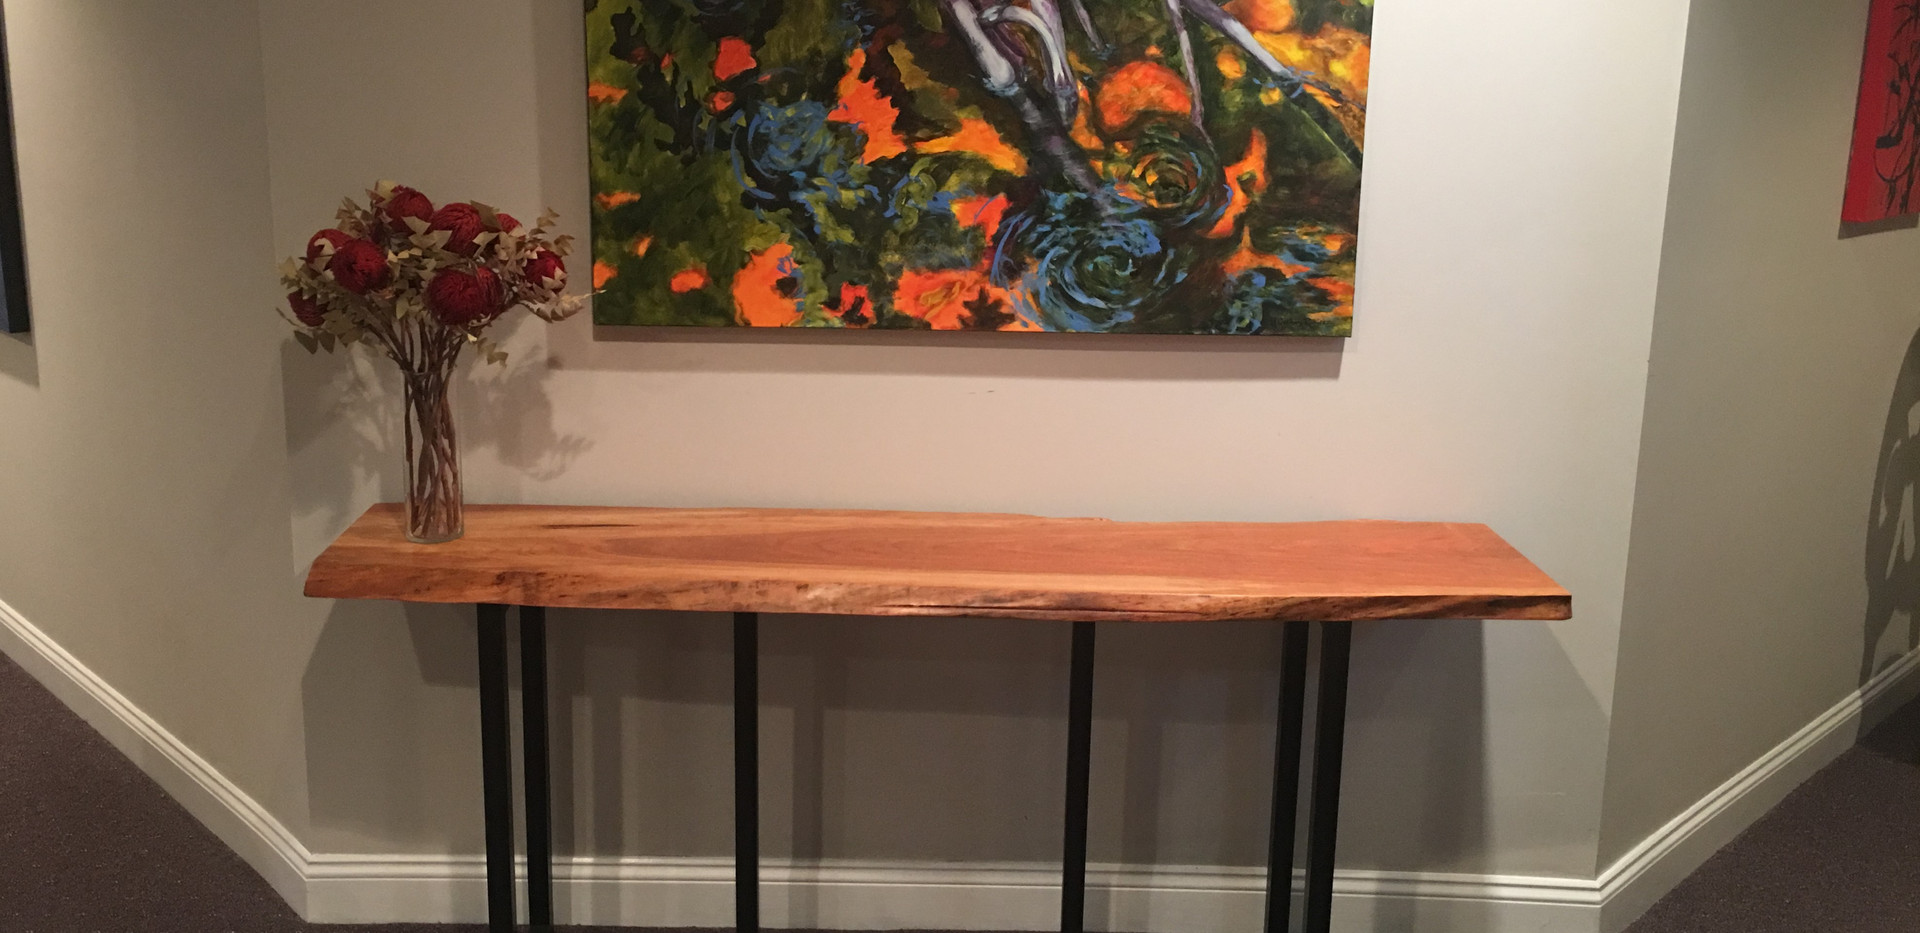 Live Edge Table by Armando